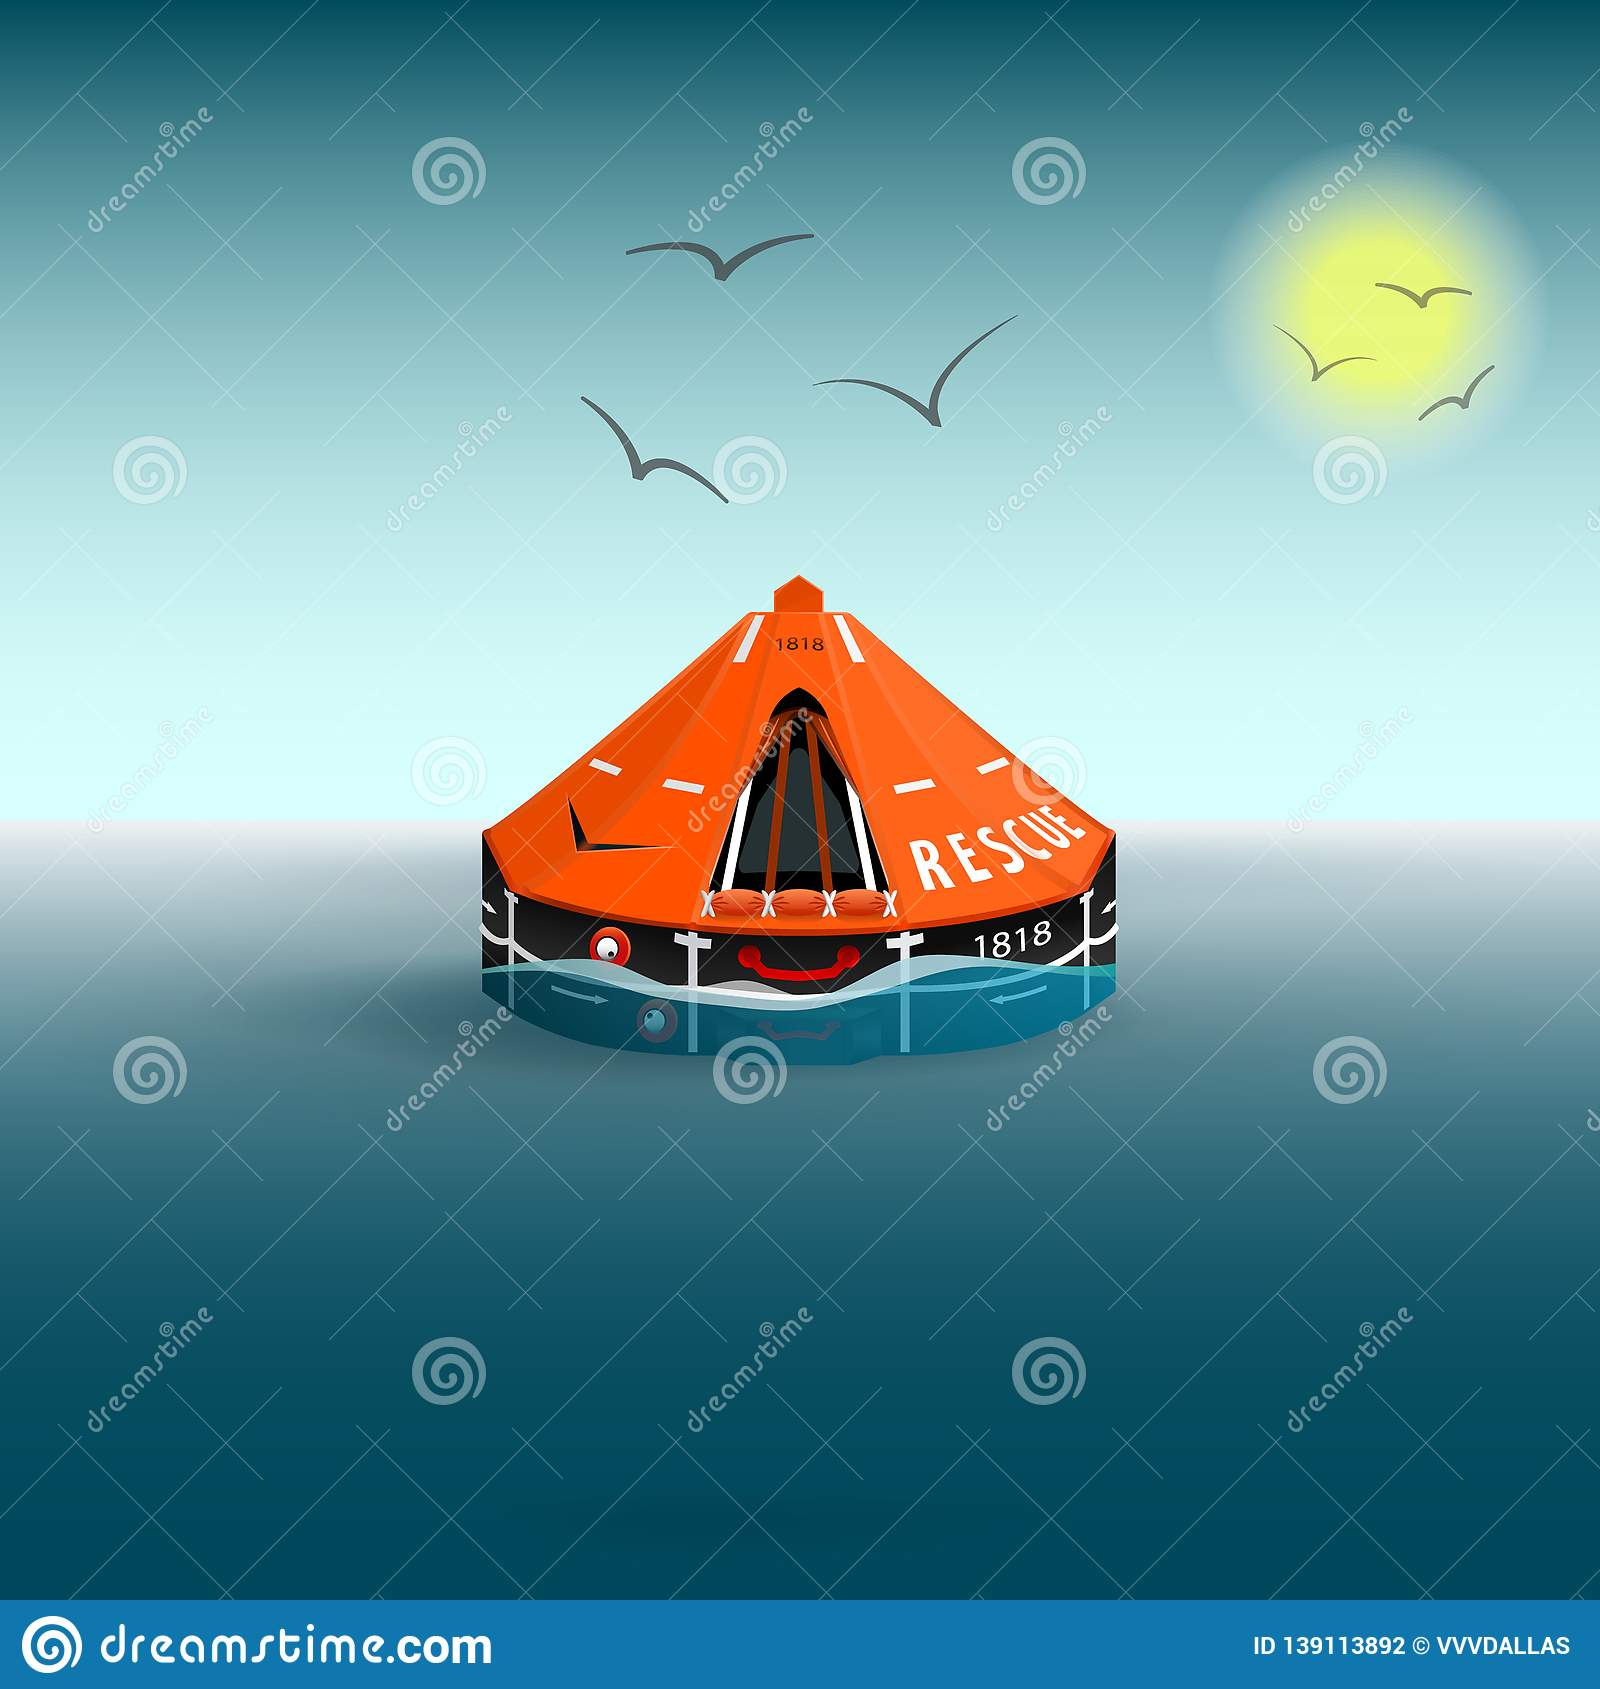 Rescue a orange raft on the sea. Gulls and the sun. Salvation on the water. Vector illustration